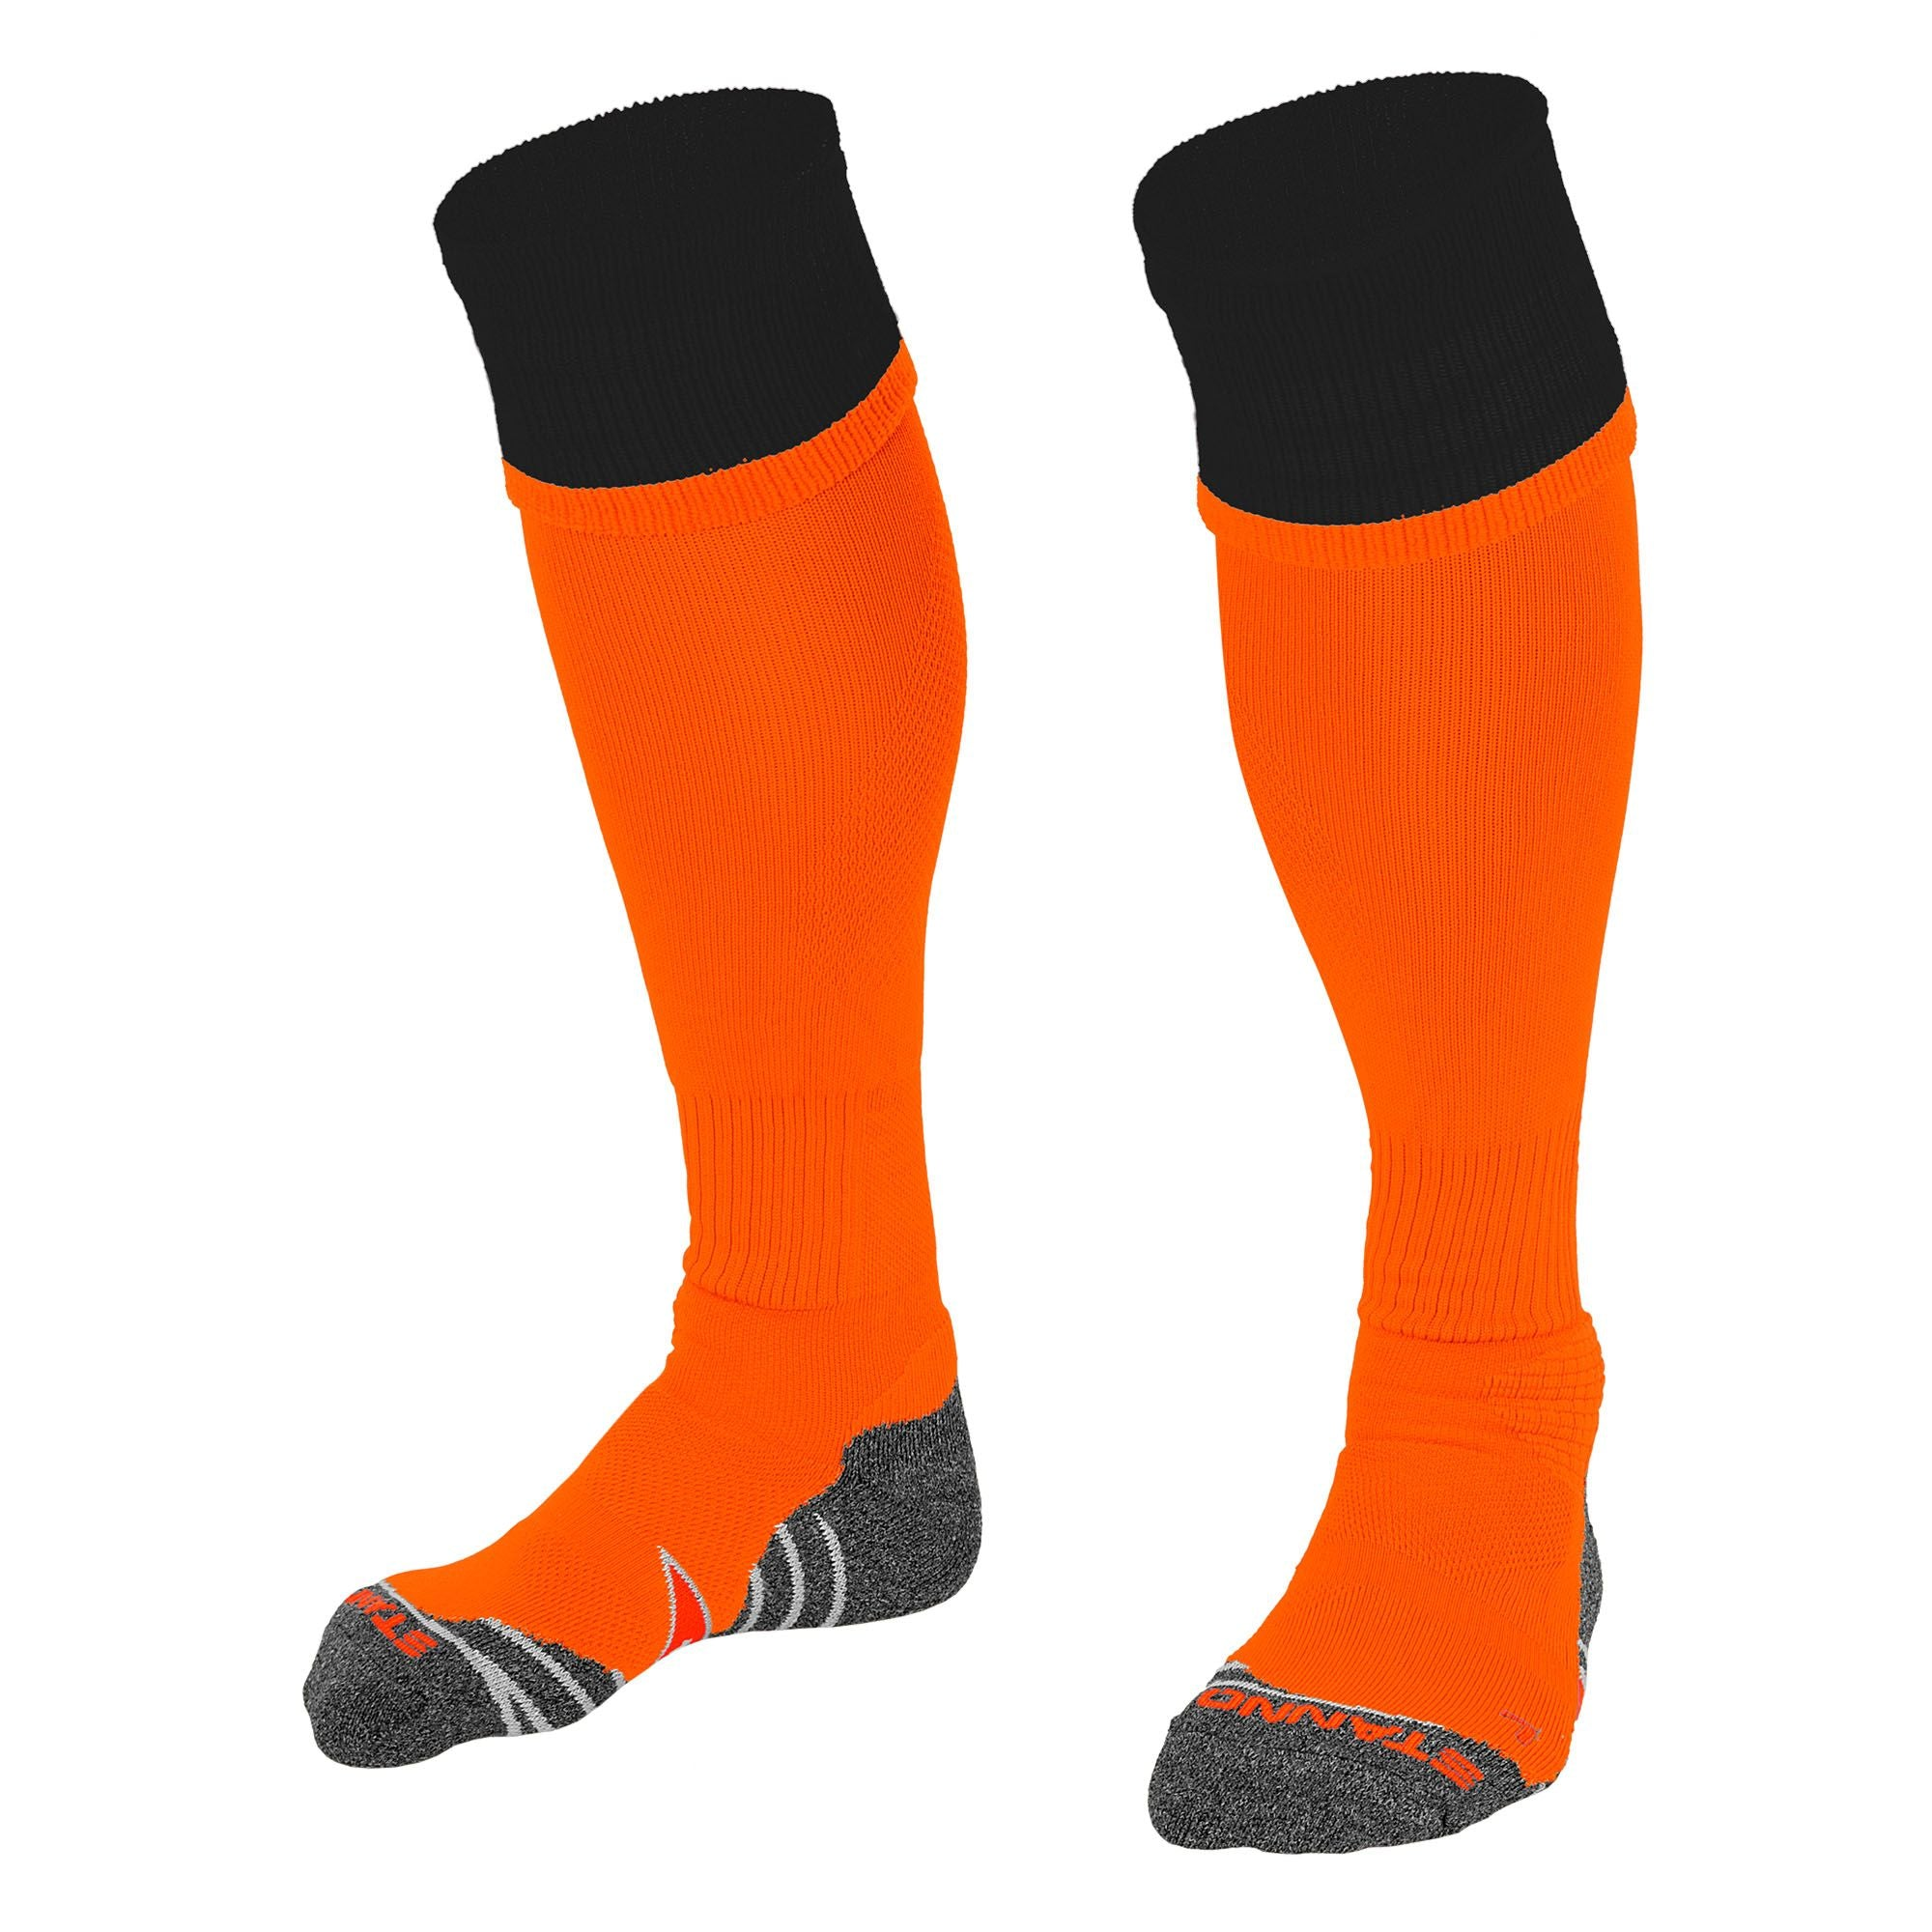 Stanno Combi Sock in orange with black contrast tops